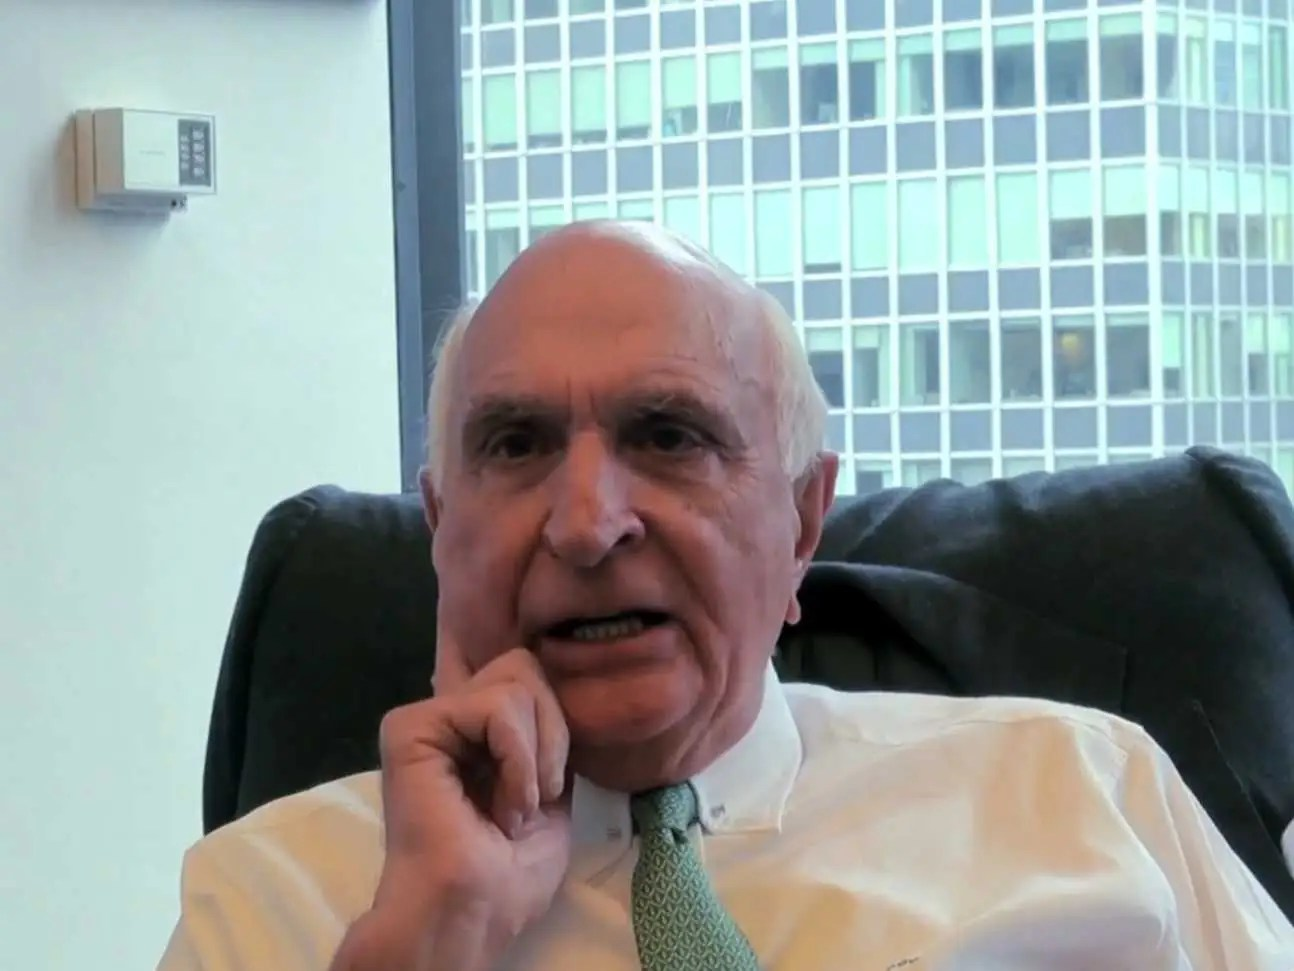 Investor Ken Langone's parents worked as a plumber and cafeteria worker.